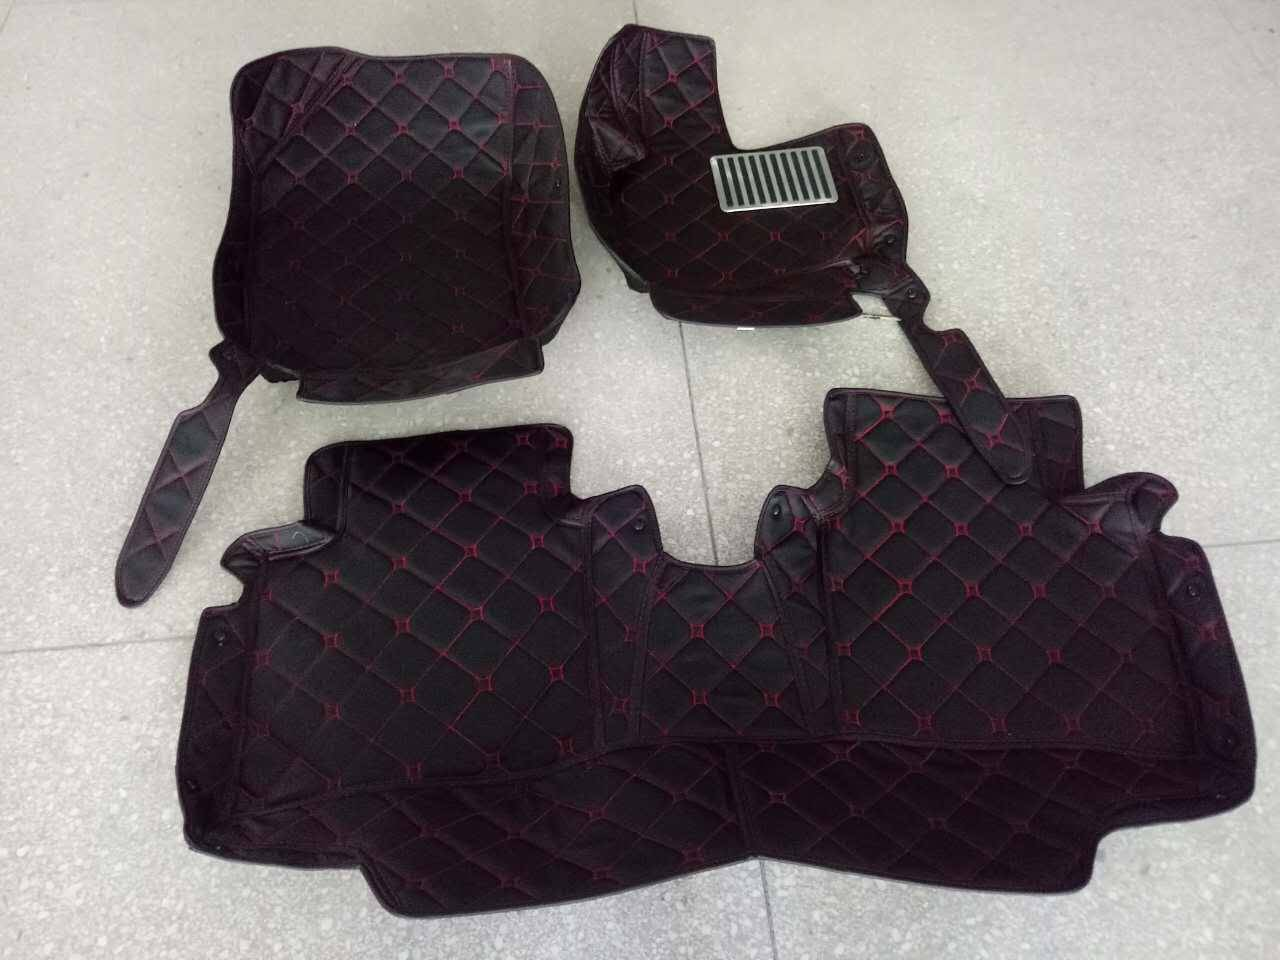 Right Hand Steer Car Mats for Audi A4, Leather Car Mats, 5D XPE Car Floor Mats